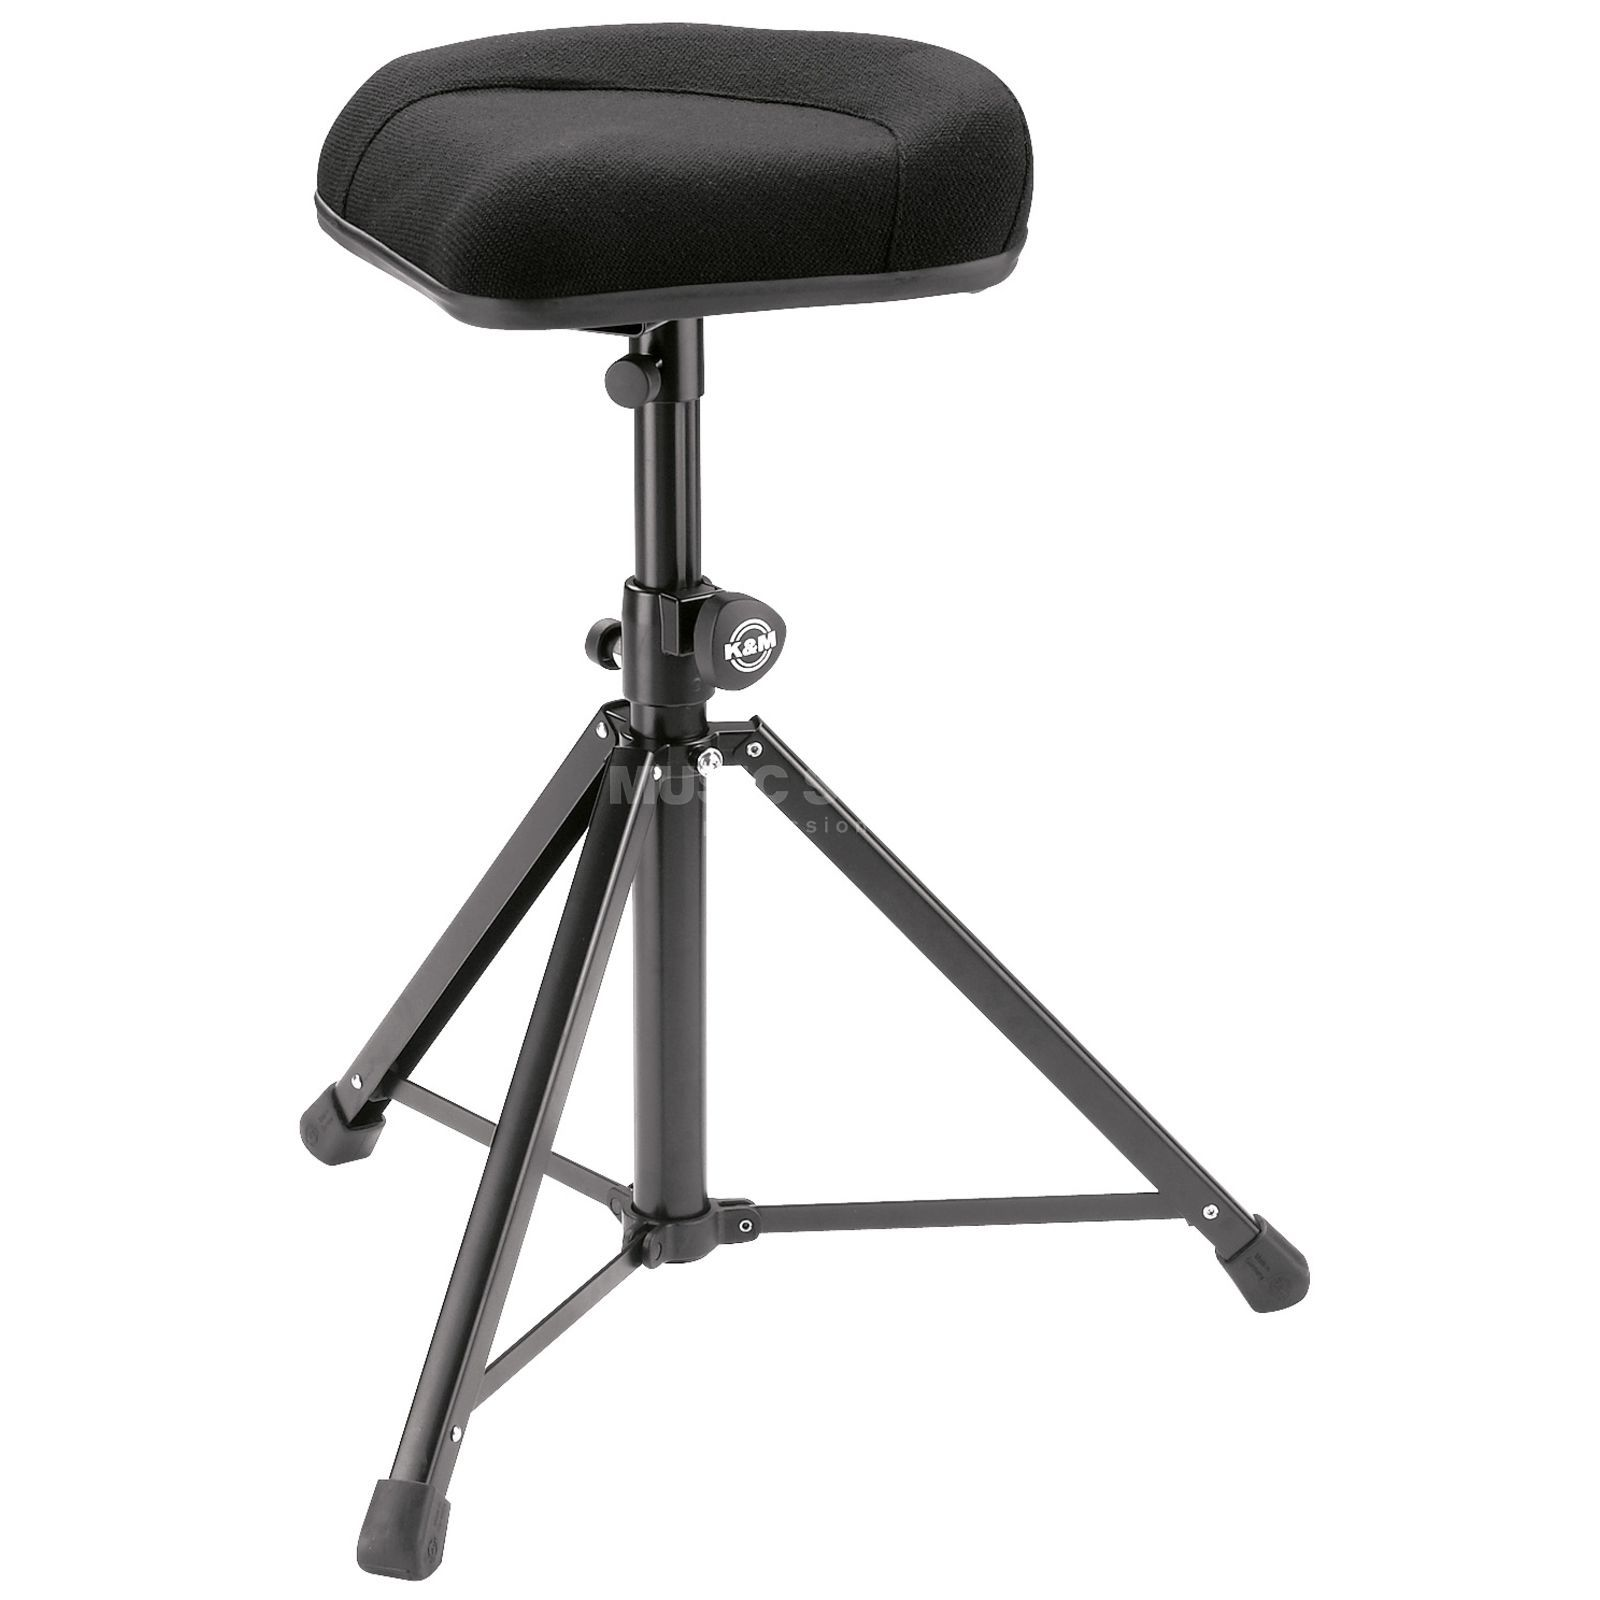 König & Meyer 14053 stool standing aid black with fabric covering Produktbillede